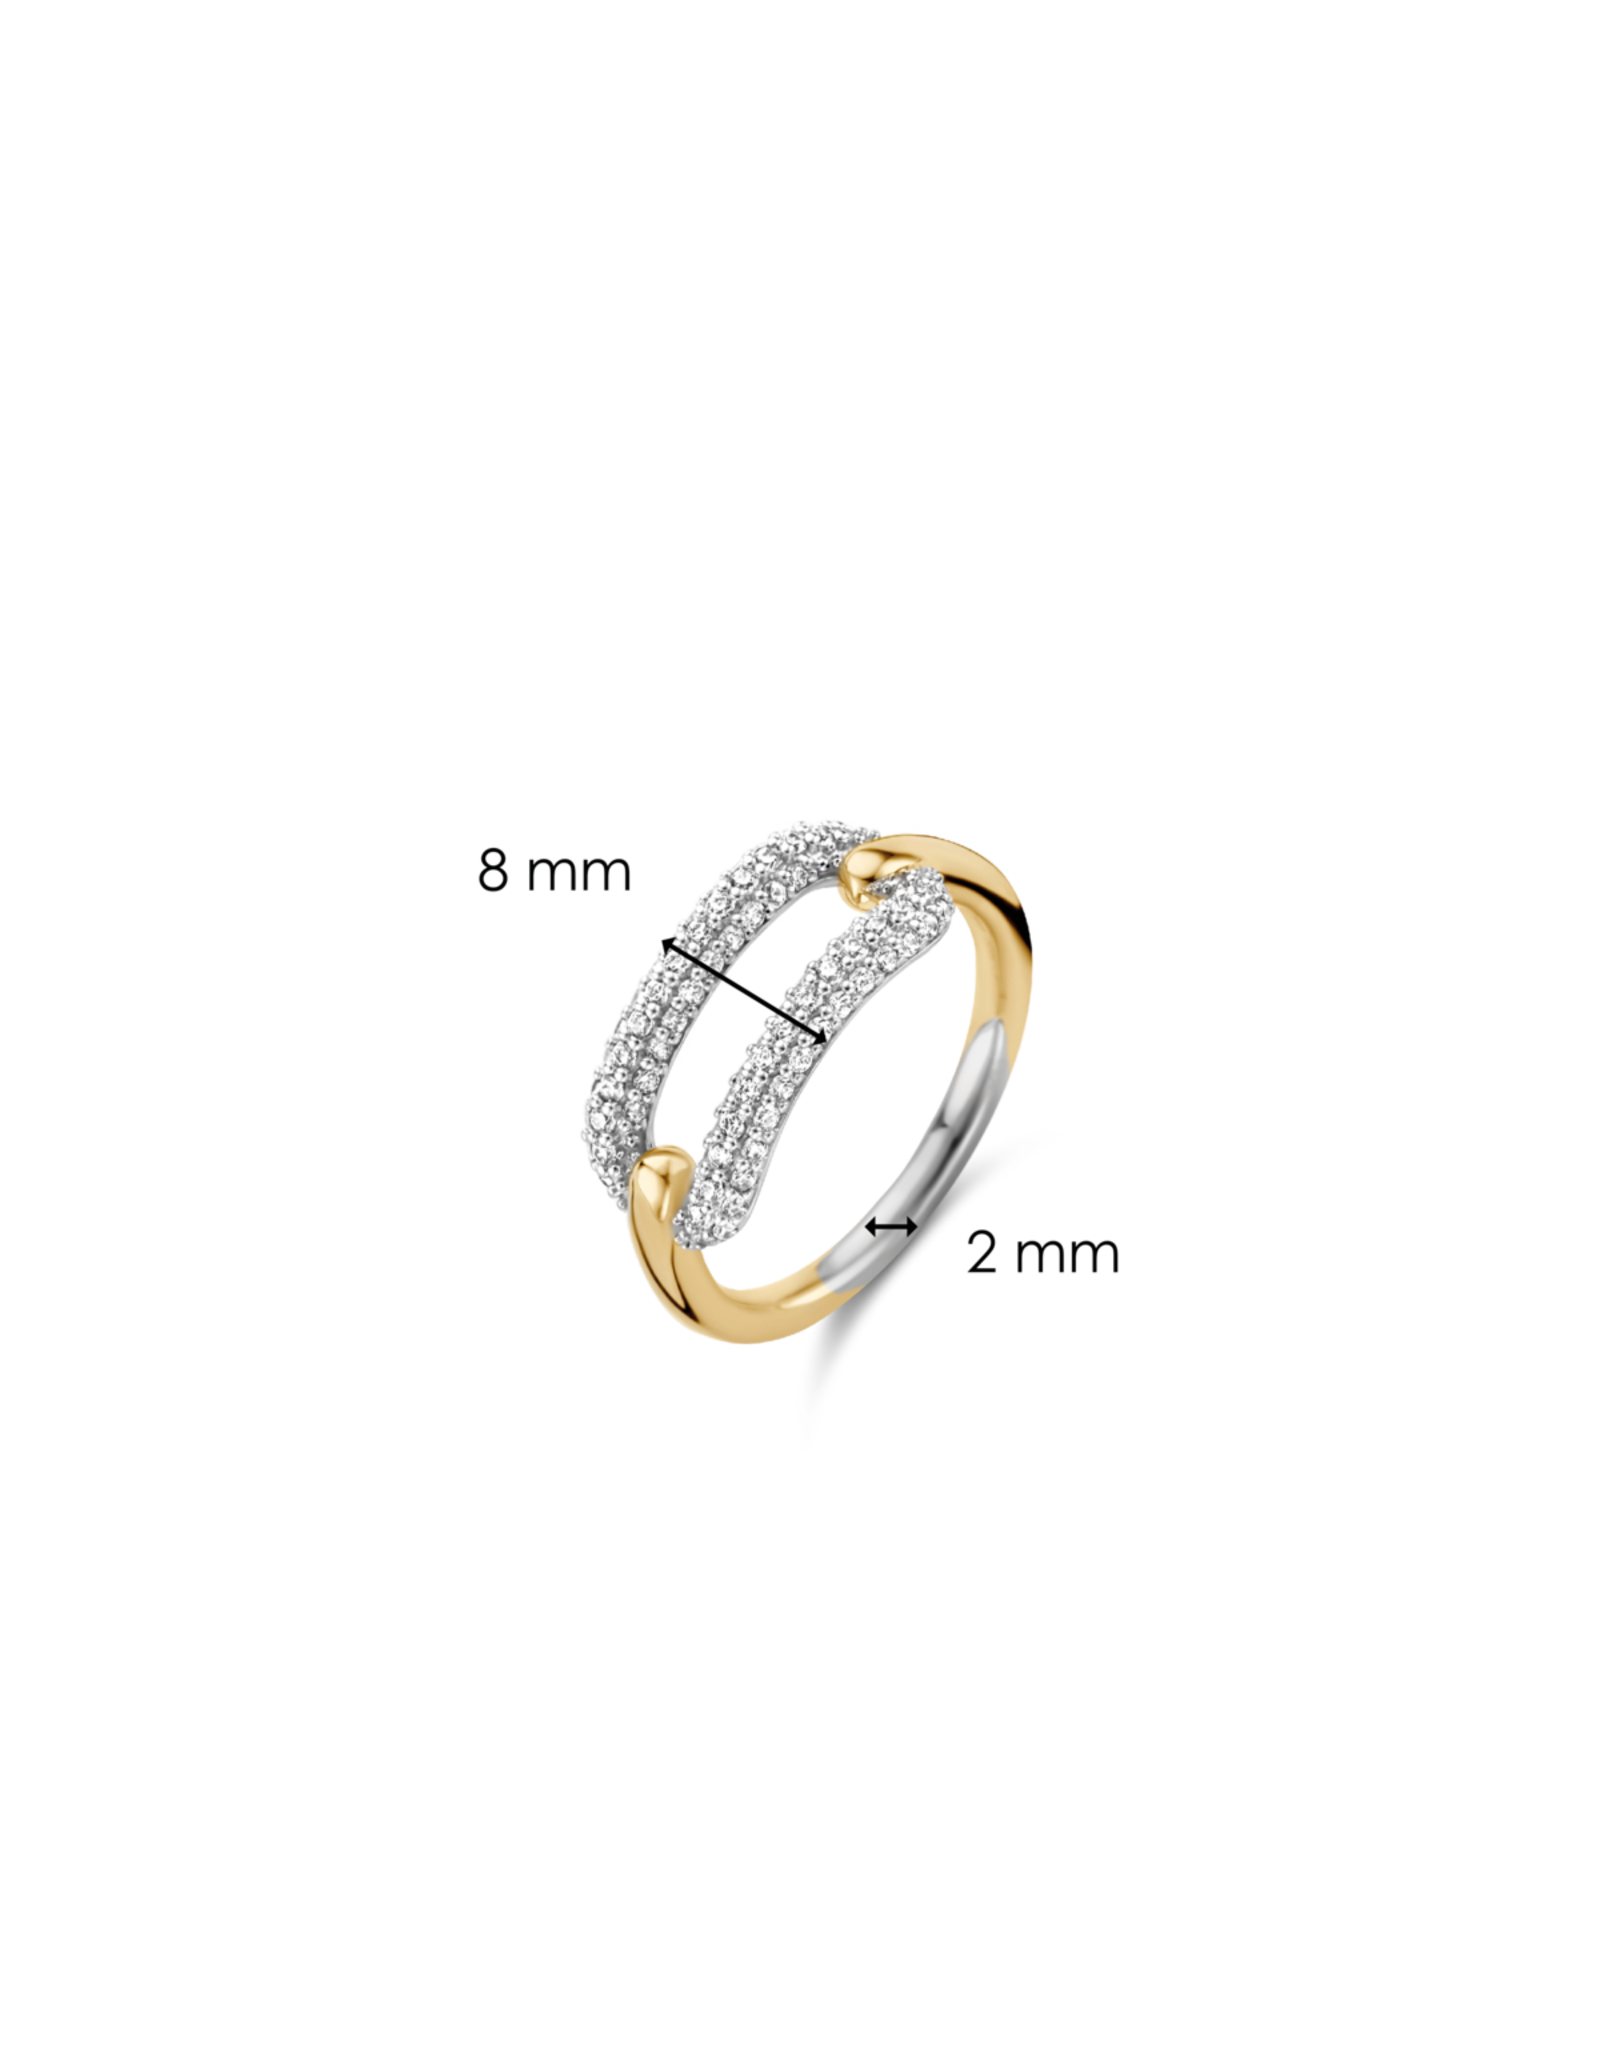 Pave Zirconia Chain Link Ring with Yellow Gold Plating- 12228ZY/58